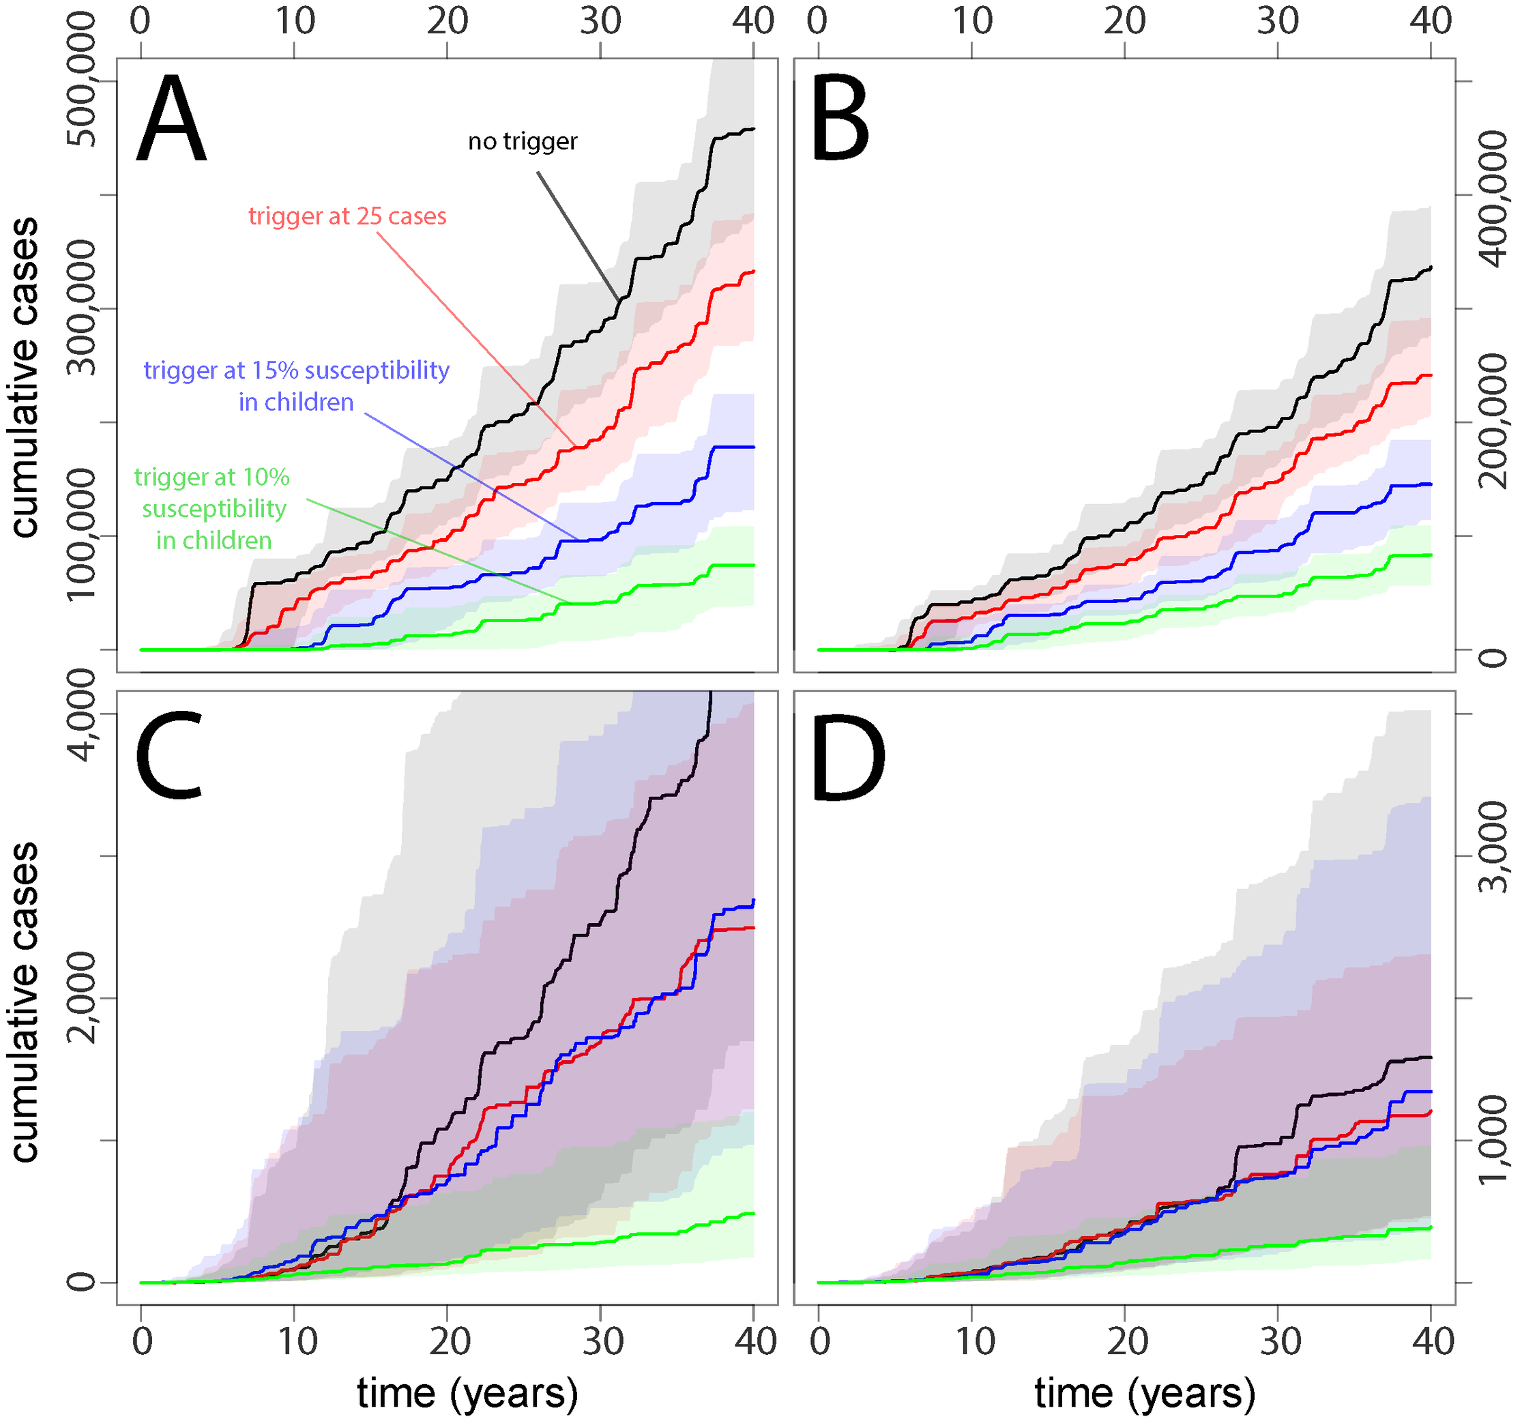 Cumulative case burdens in (A) Yemen-like, (B) Niger-like, (C) Nepal-like, and (D) Zambia-like populations for a range of different types of vaccination scenarios, where TCs are delayed by 3 mo relative to the trigger and TC vaccination reaches 20% of the susceptible population.